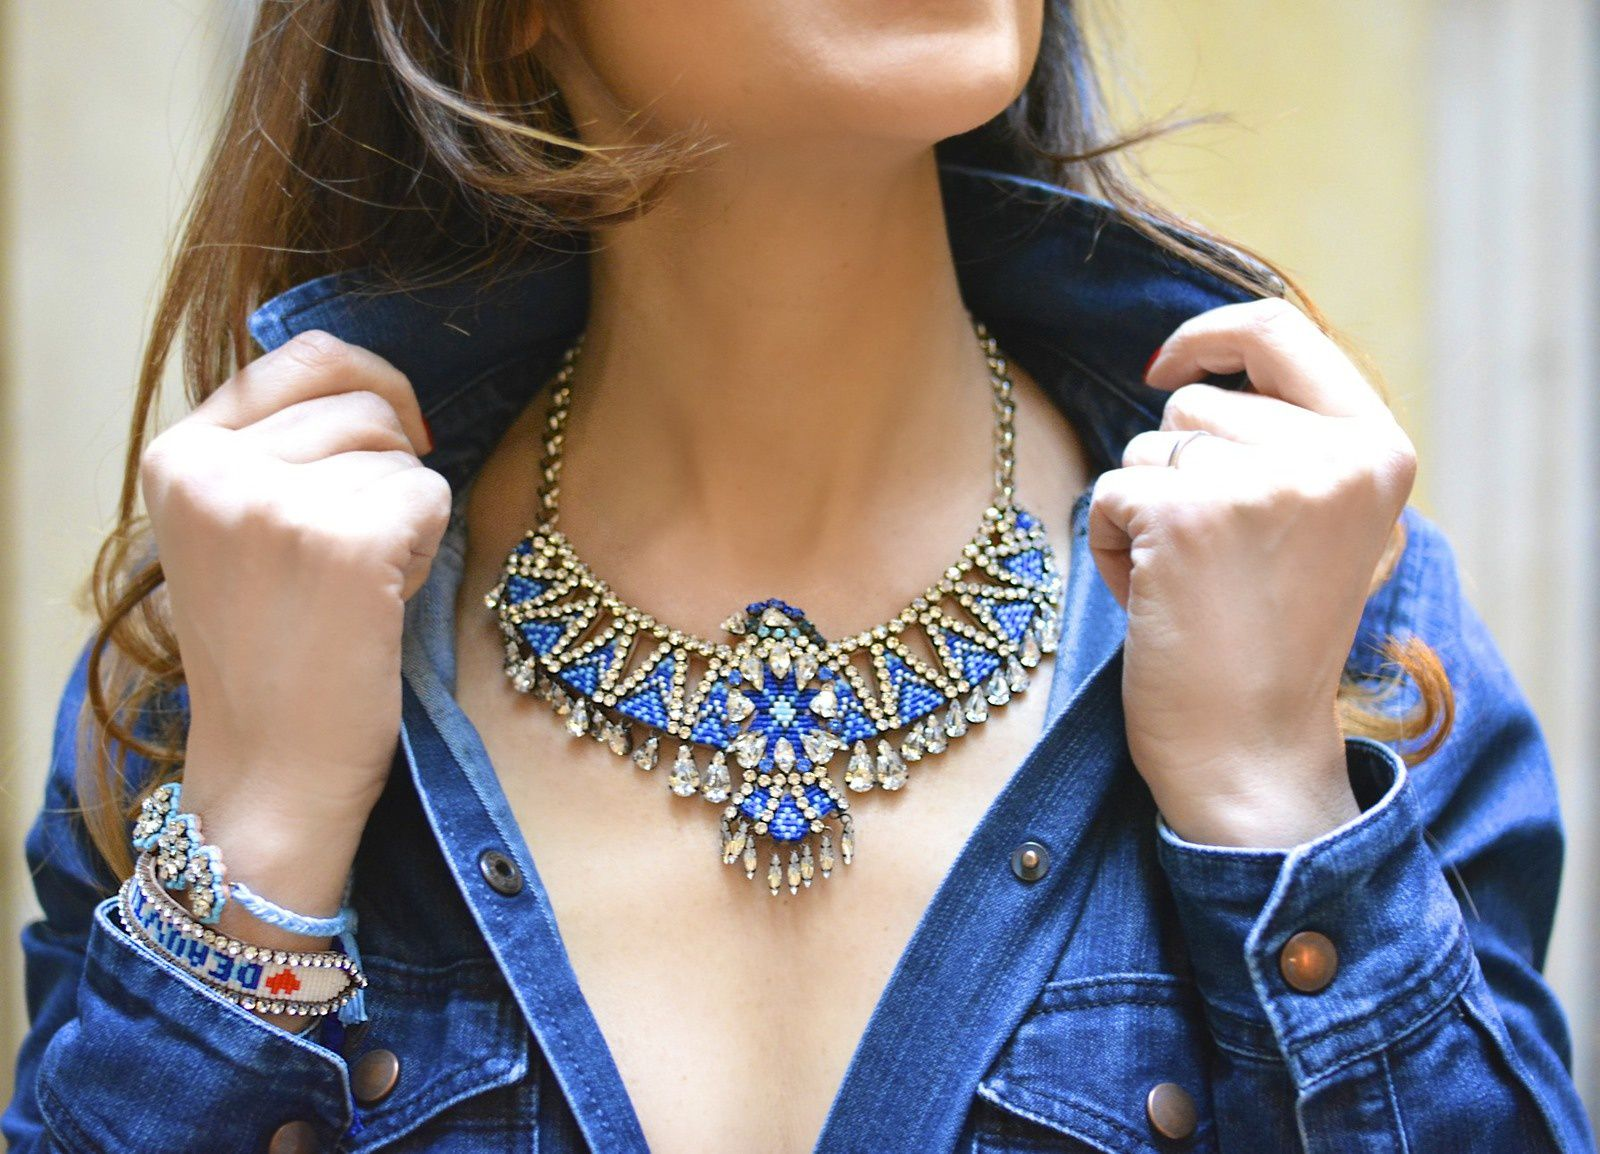 Le PHENIX NECKLACE BLUE de SHOUROUK